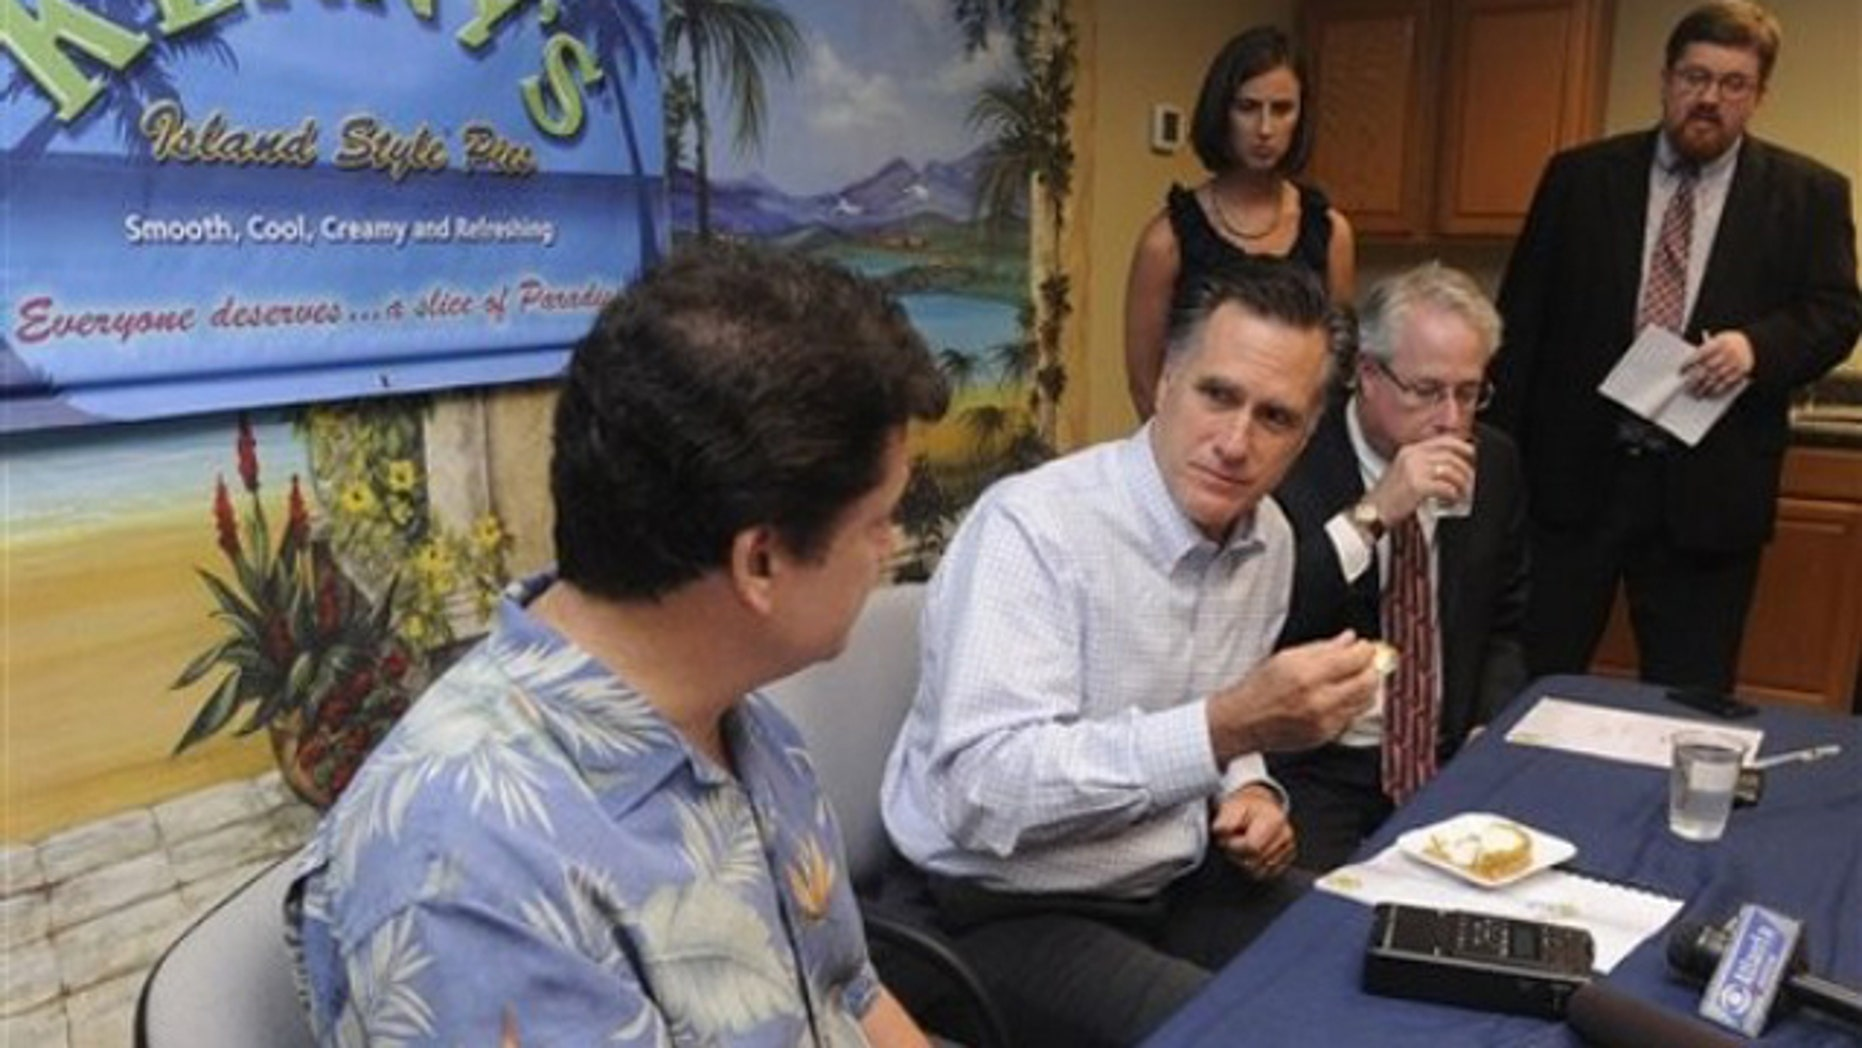 Thursday: Republican presidential hopeful, former Mass. Gov. Mitt Romney, takes a bite of pie while talking to Kenny Burts, left, owner of the small Georgia business Kenny's Great Pies in Smyrna.